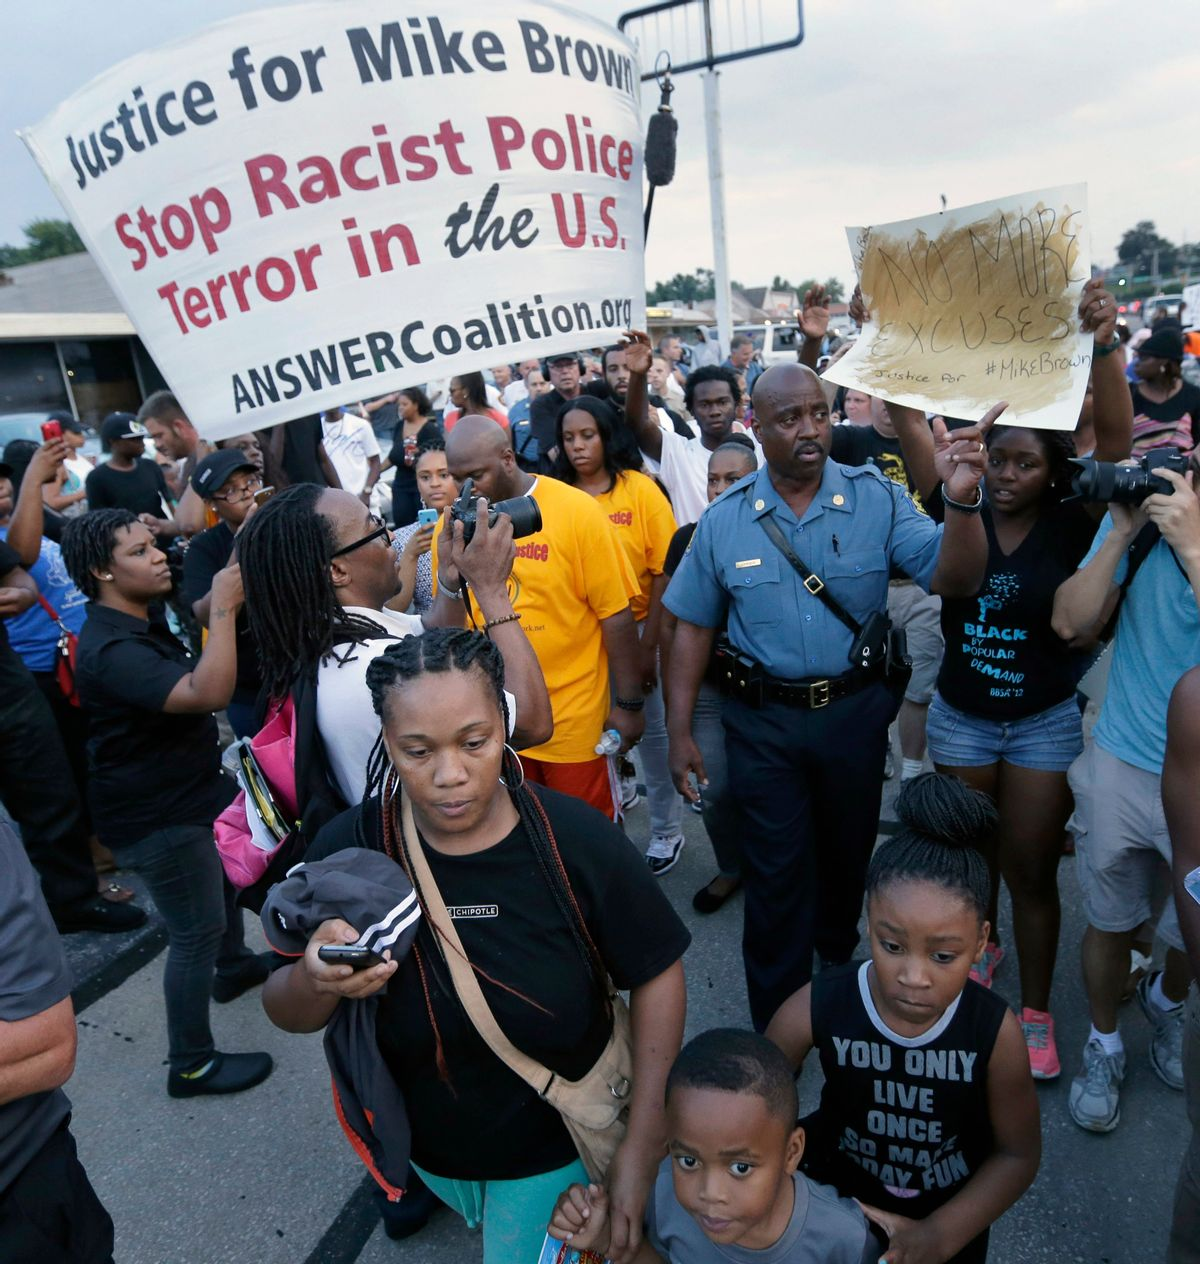 In this Aug, 16, 2014 file photo, Missouri Highway Patrol Capt. Ron Johnson walks among people protesting the police shooting death of Michael Brown a week ago in Ferguson, Mo. The Ferguson City Council, set to meet Tuesday, Sept. 9, 2014, for the first time since the fatal shooting of Brown, said it plans to establish a review board to help guide the police department and make other changes aimed at improving community relations.   (AP/Charlie Riedel)